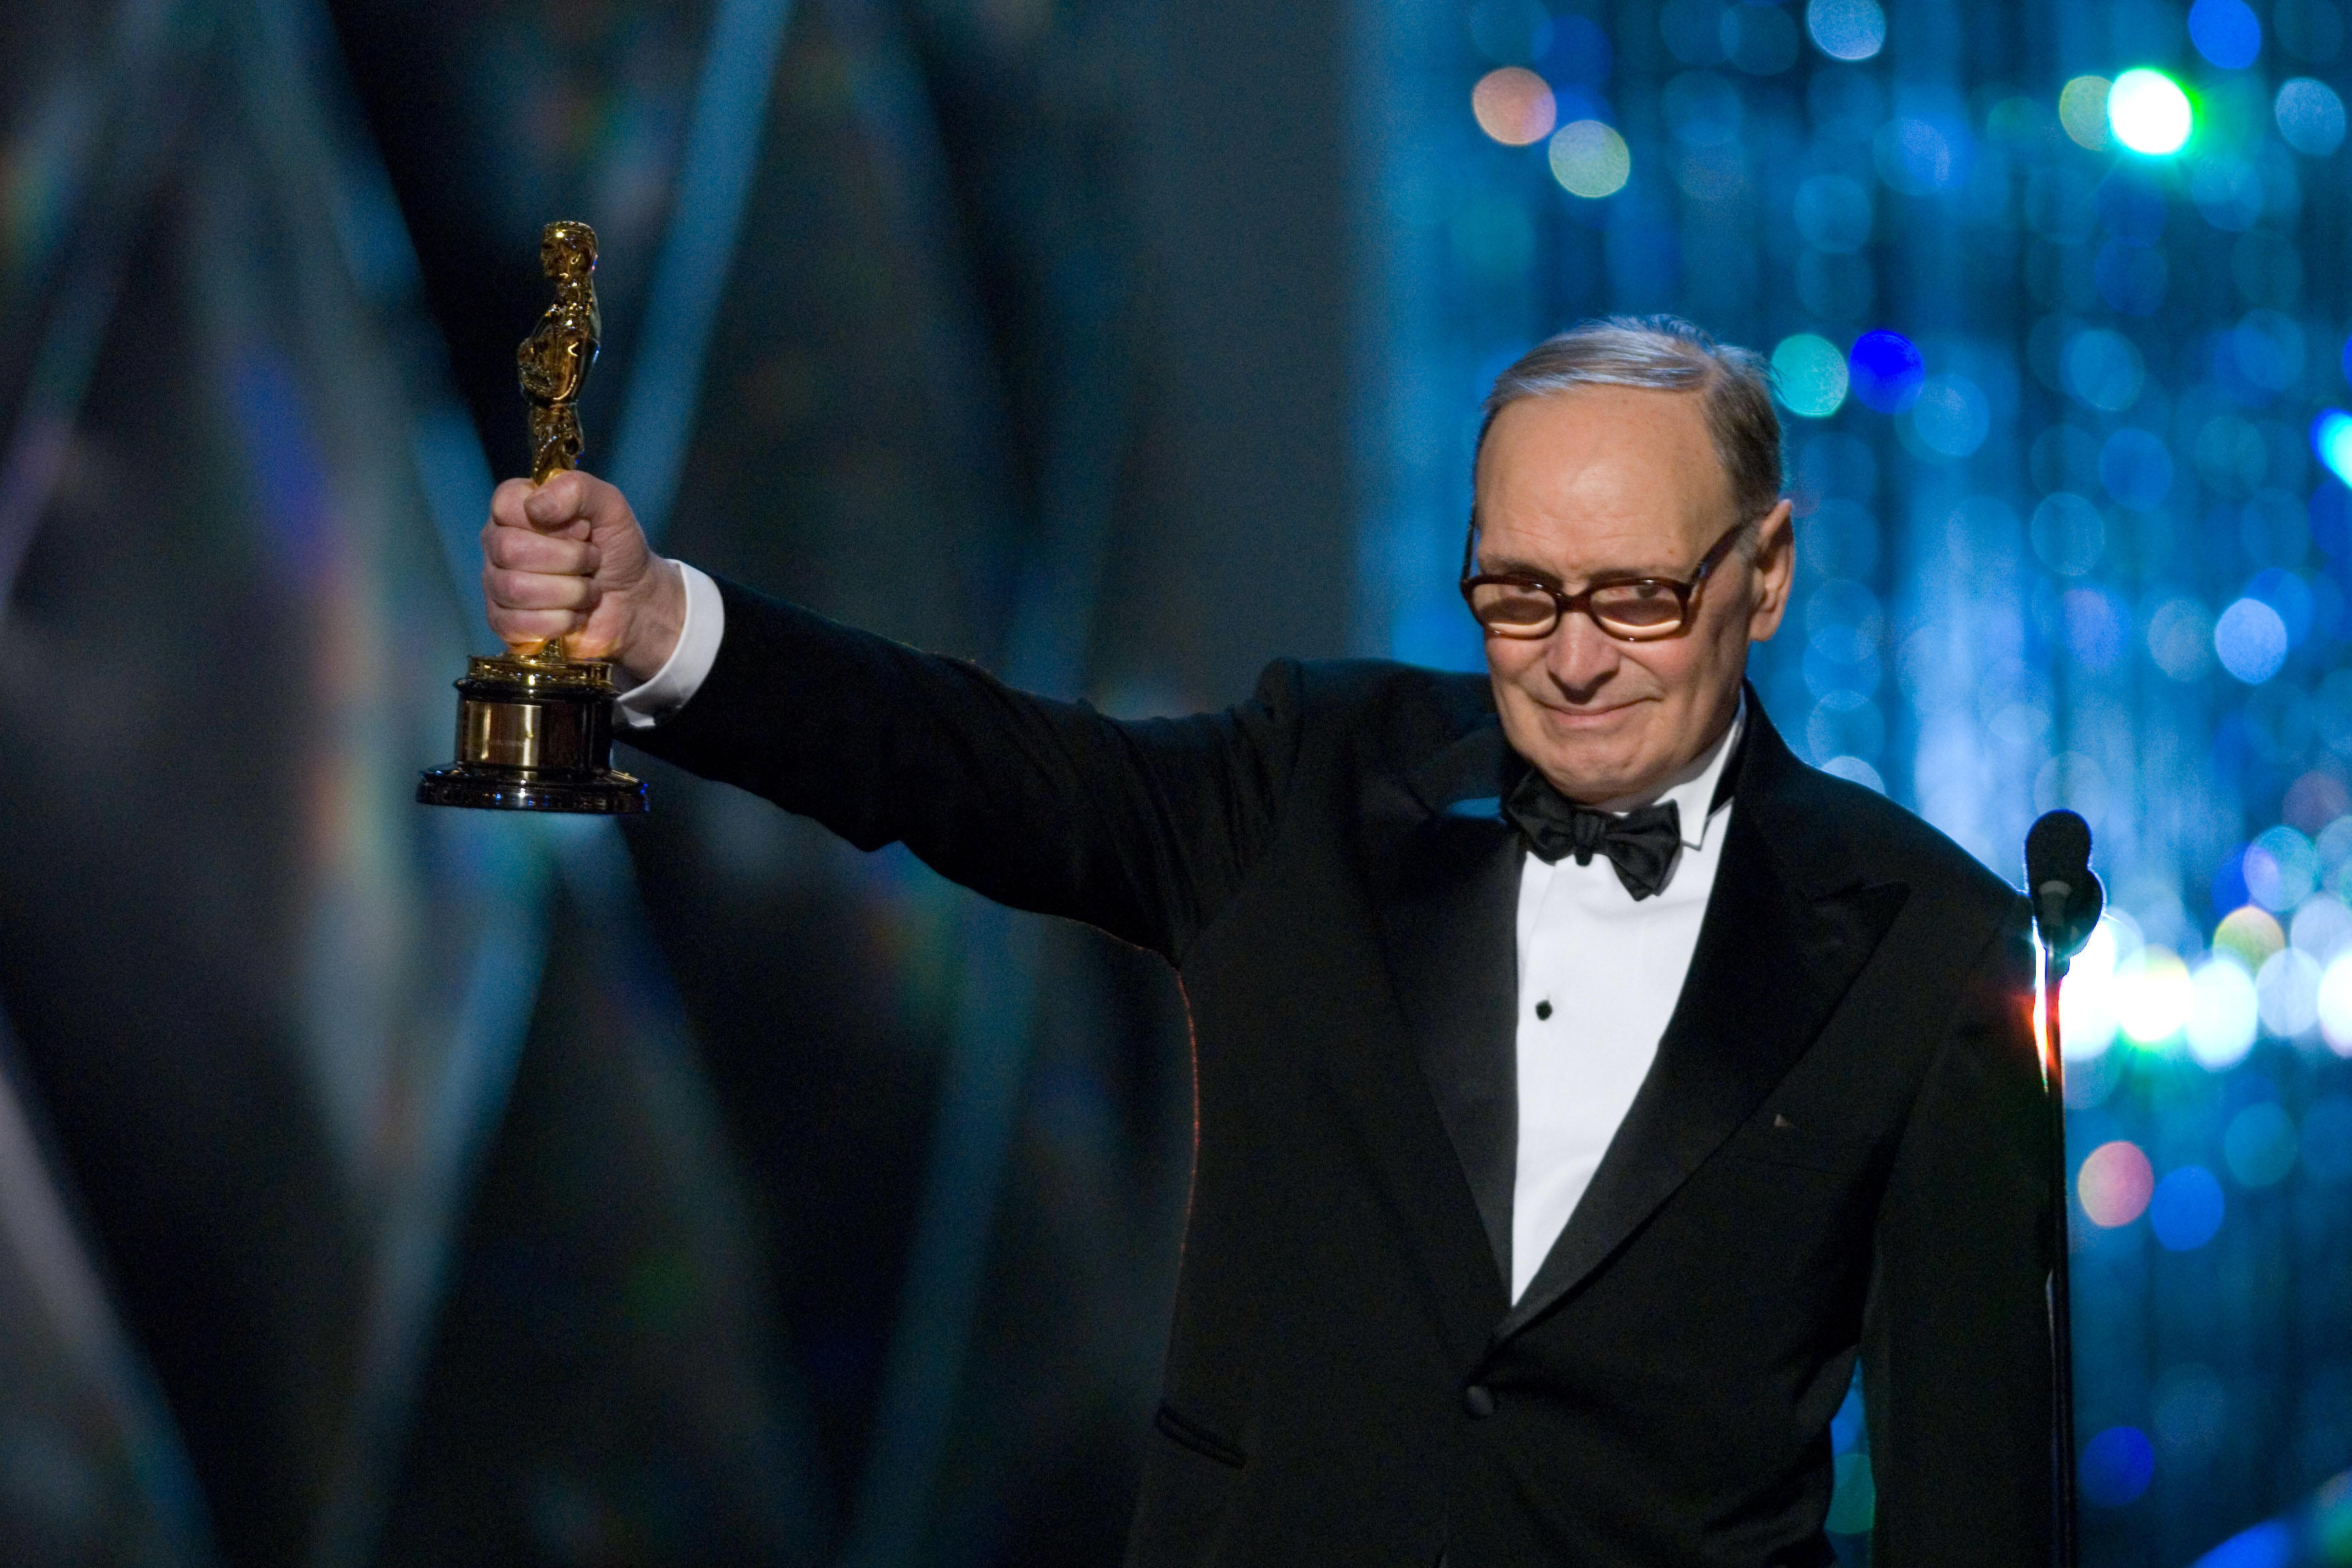 http://www.irpinianews.it/wp-content/uploads/morricone.jpg